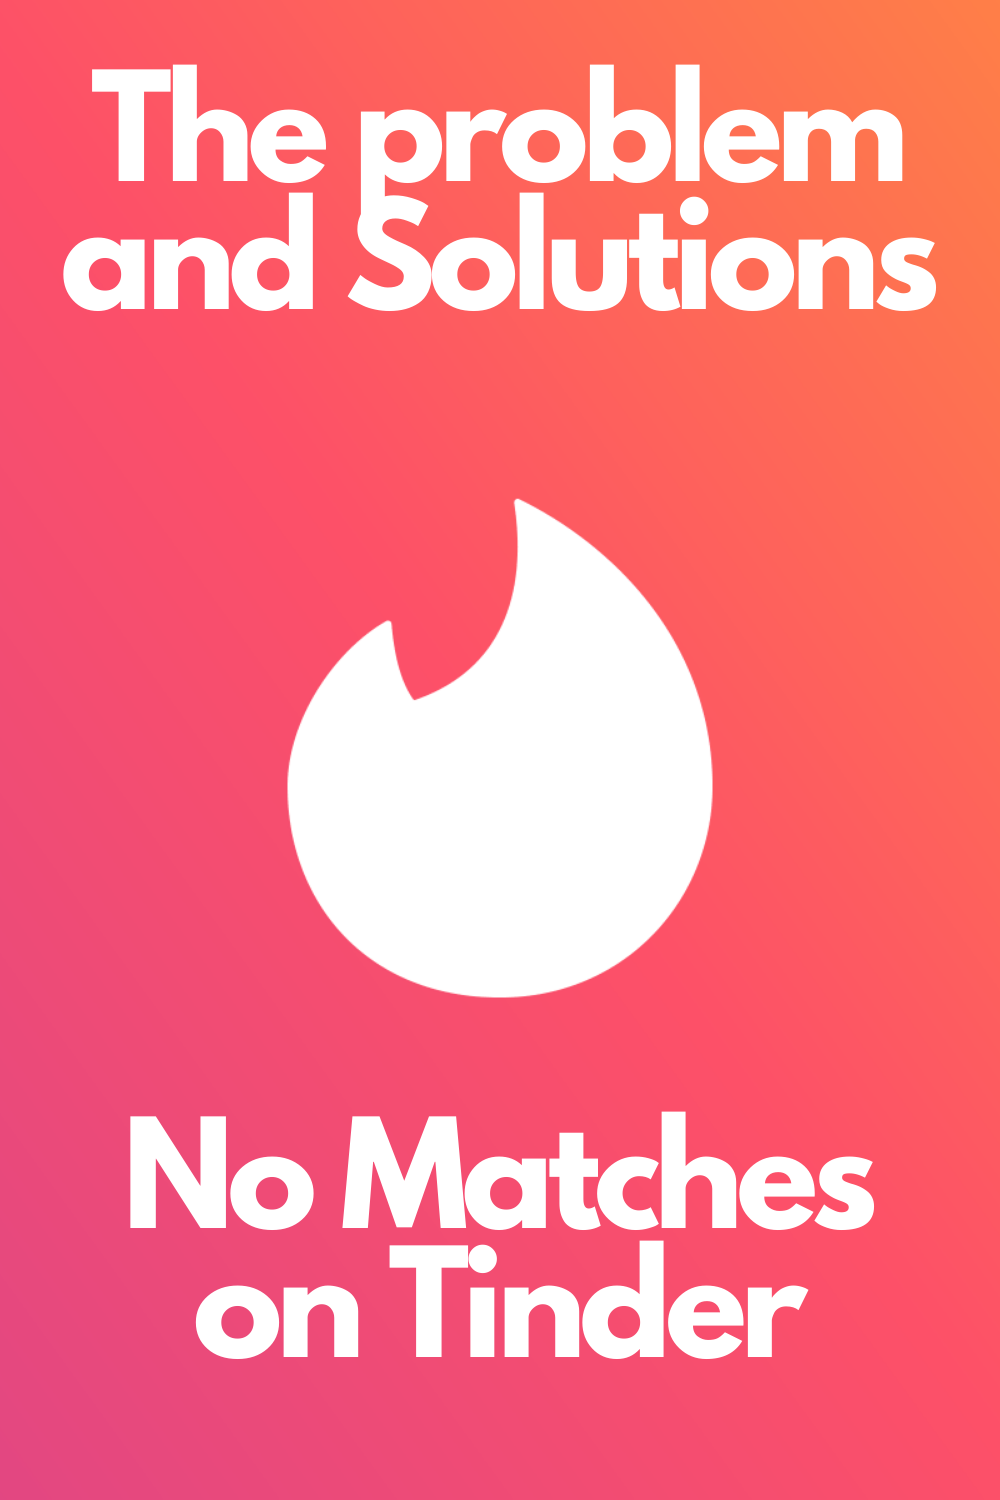 No matches on Tinder (The problem and Solutions) | Best of